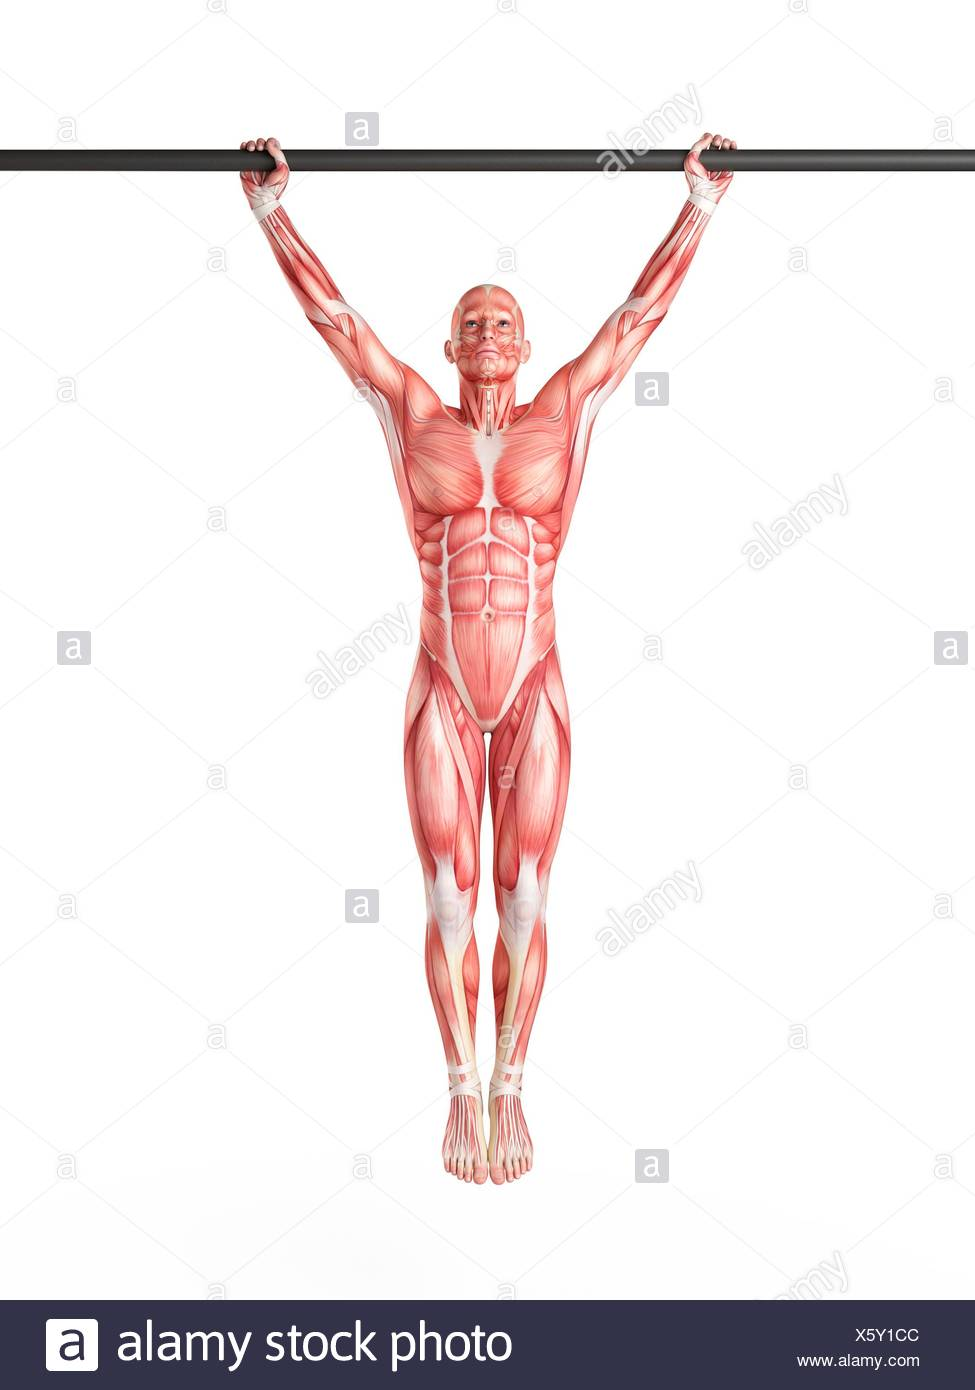 Pull Ups Cut Out Stock Images & Pictures - Alamy